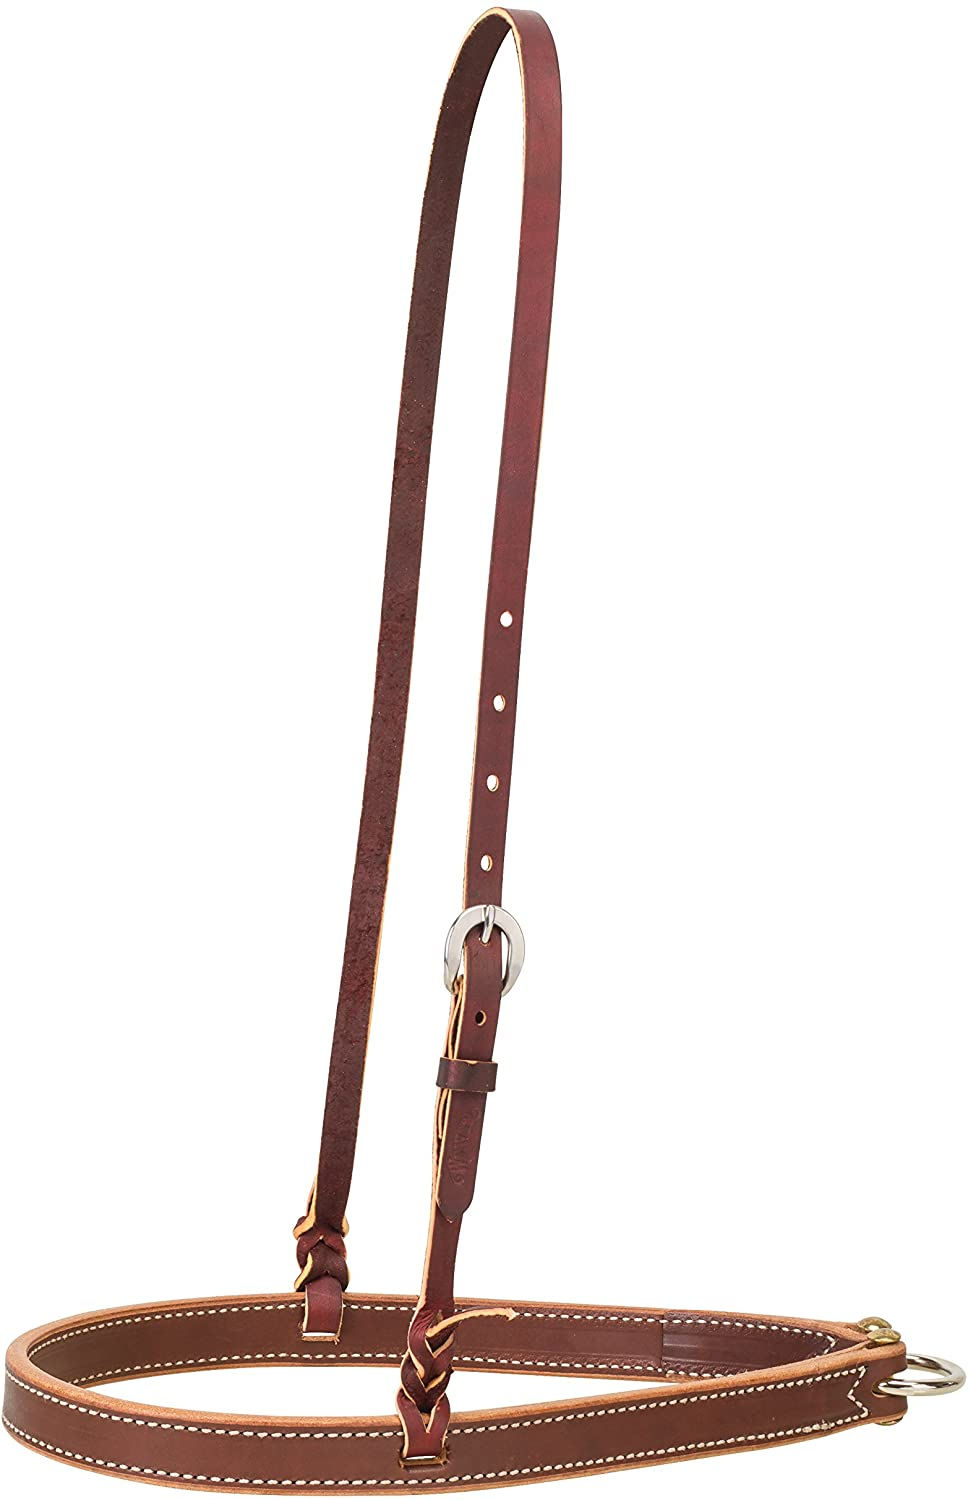 Weaver Leather Noseband cheap Manufacturer regenerated product Horizons